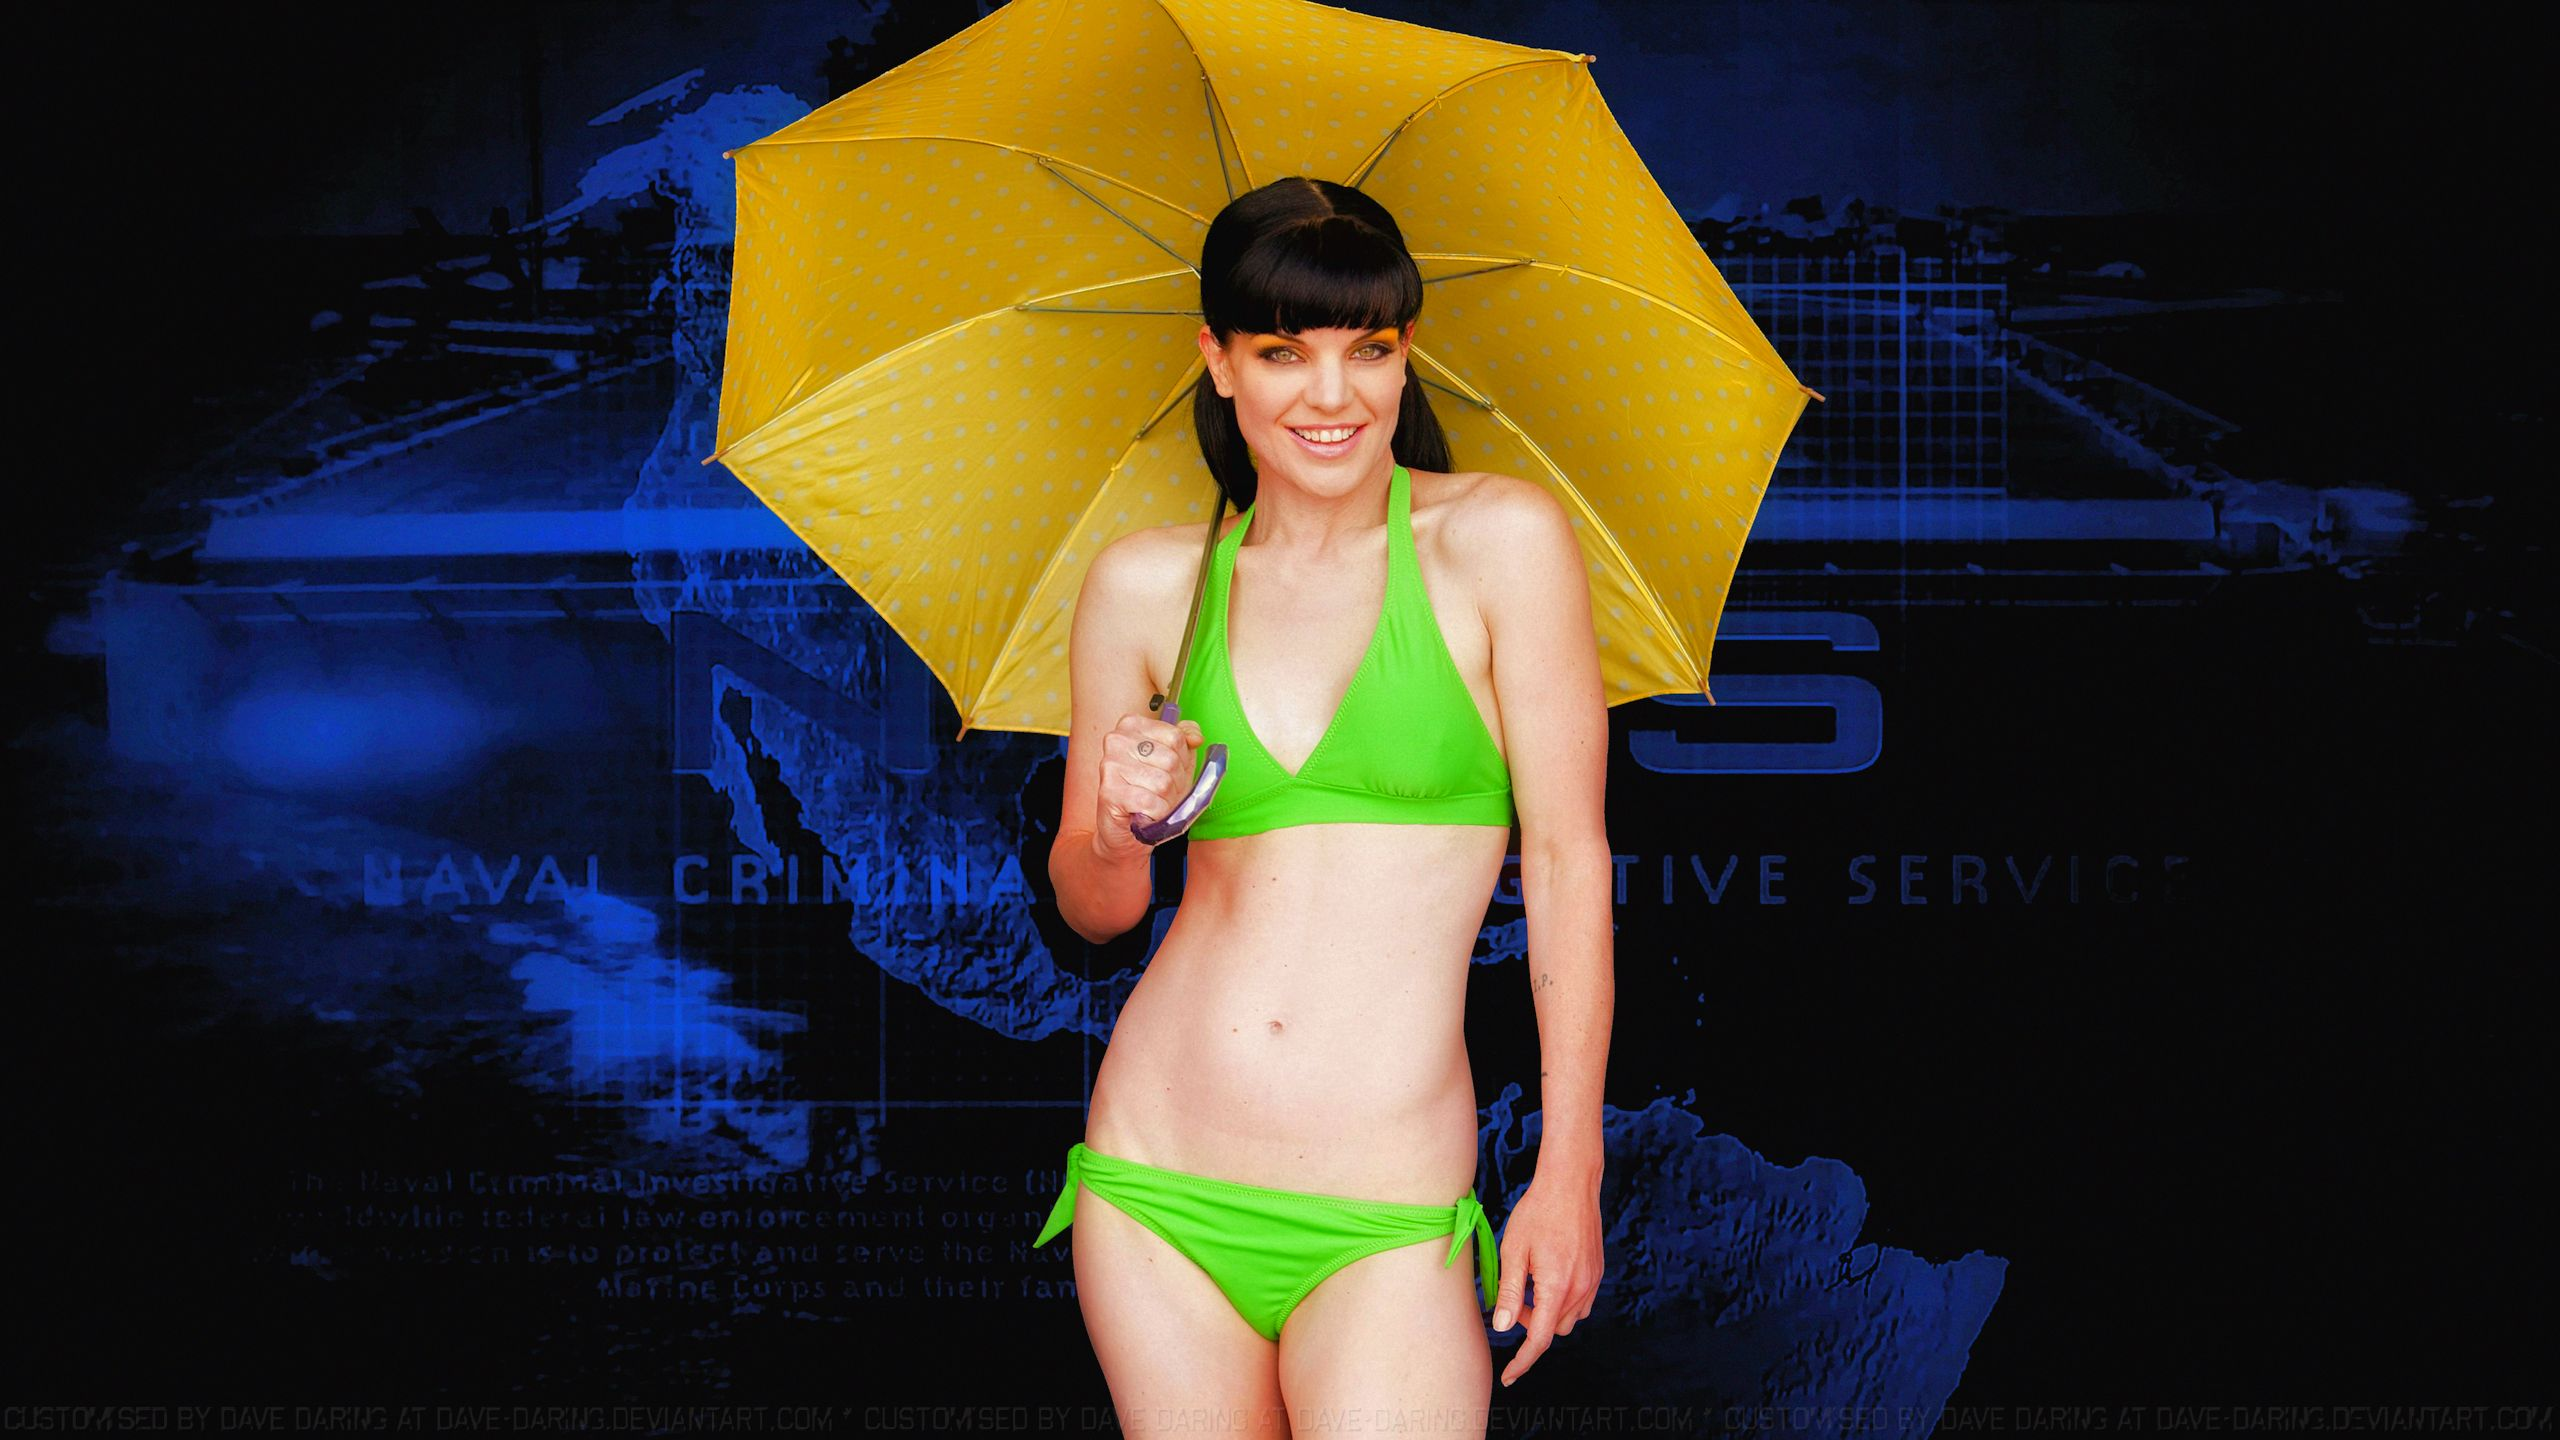 Pauley Perrette Backgrounds on Wallpapers Vista